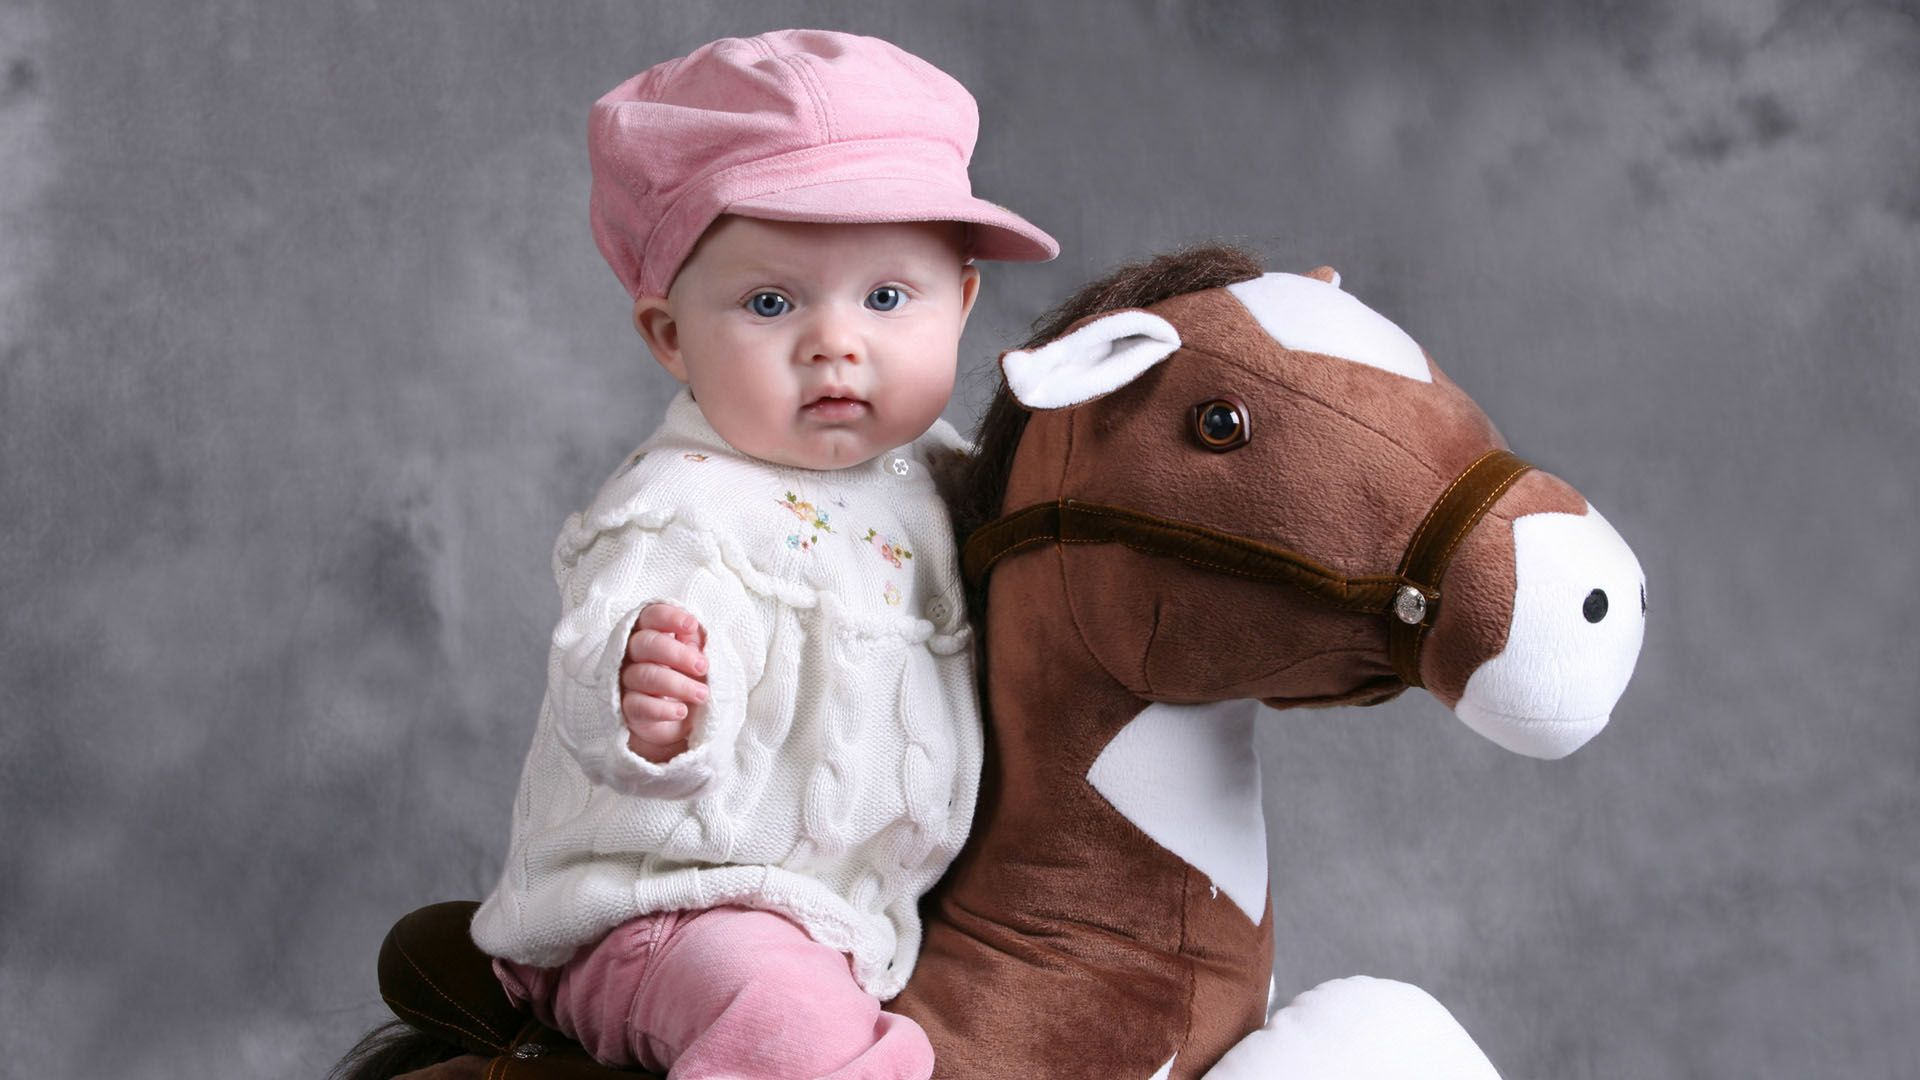 A Cute Baby Riding A Soft Toy Hd Wallpapers 19201080 Allhdwall